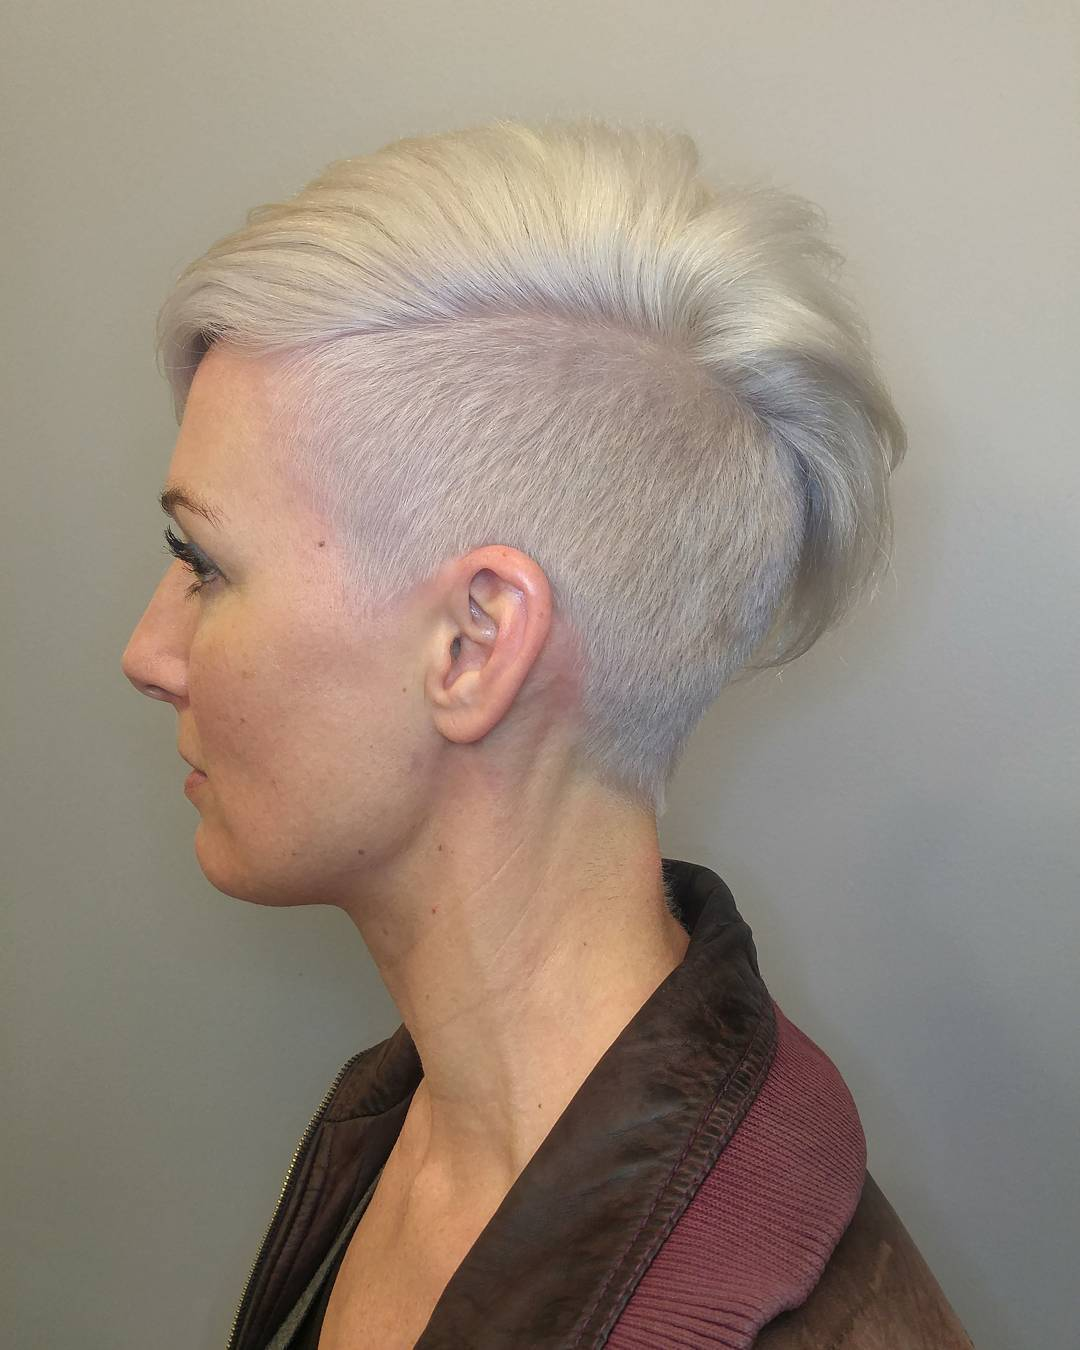 Women's Cuts<br /> Short Hair